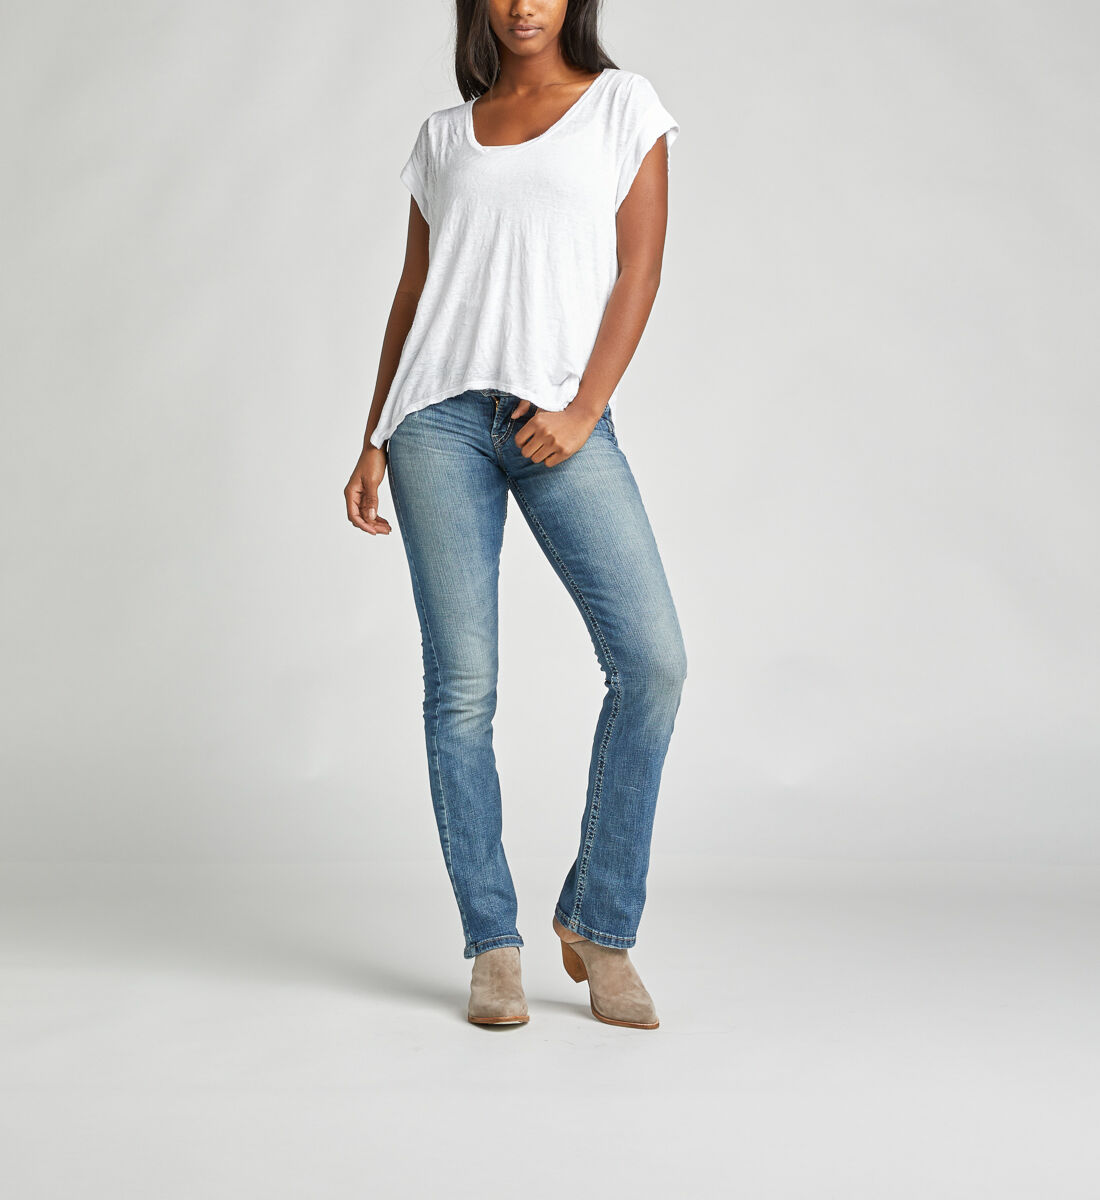 Tuesday Low Rise Slim Bootcut Jeans Alt Image 1